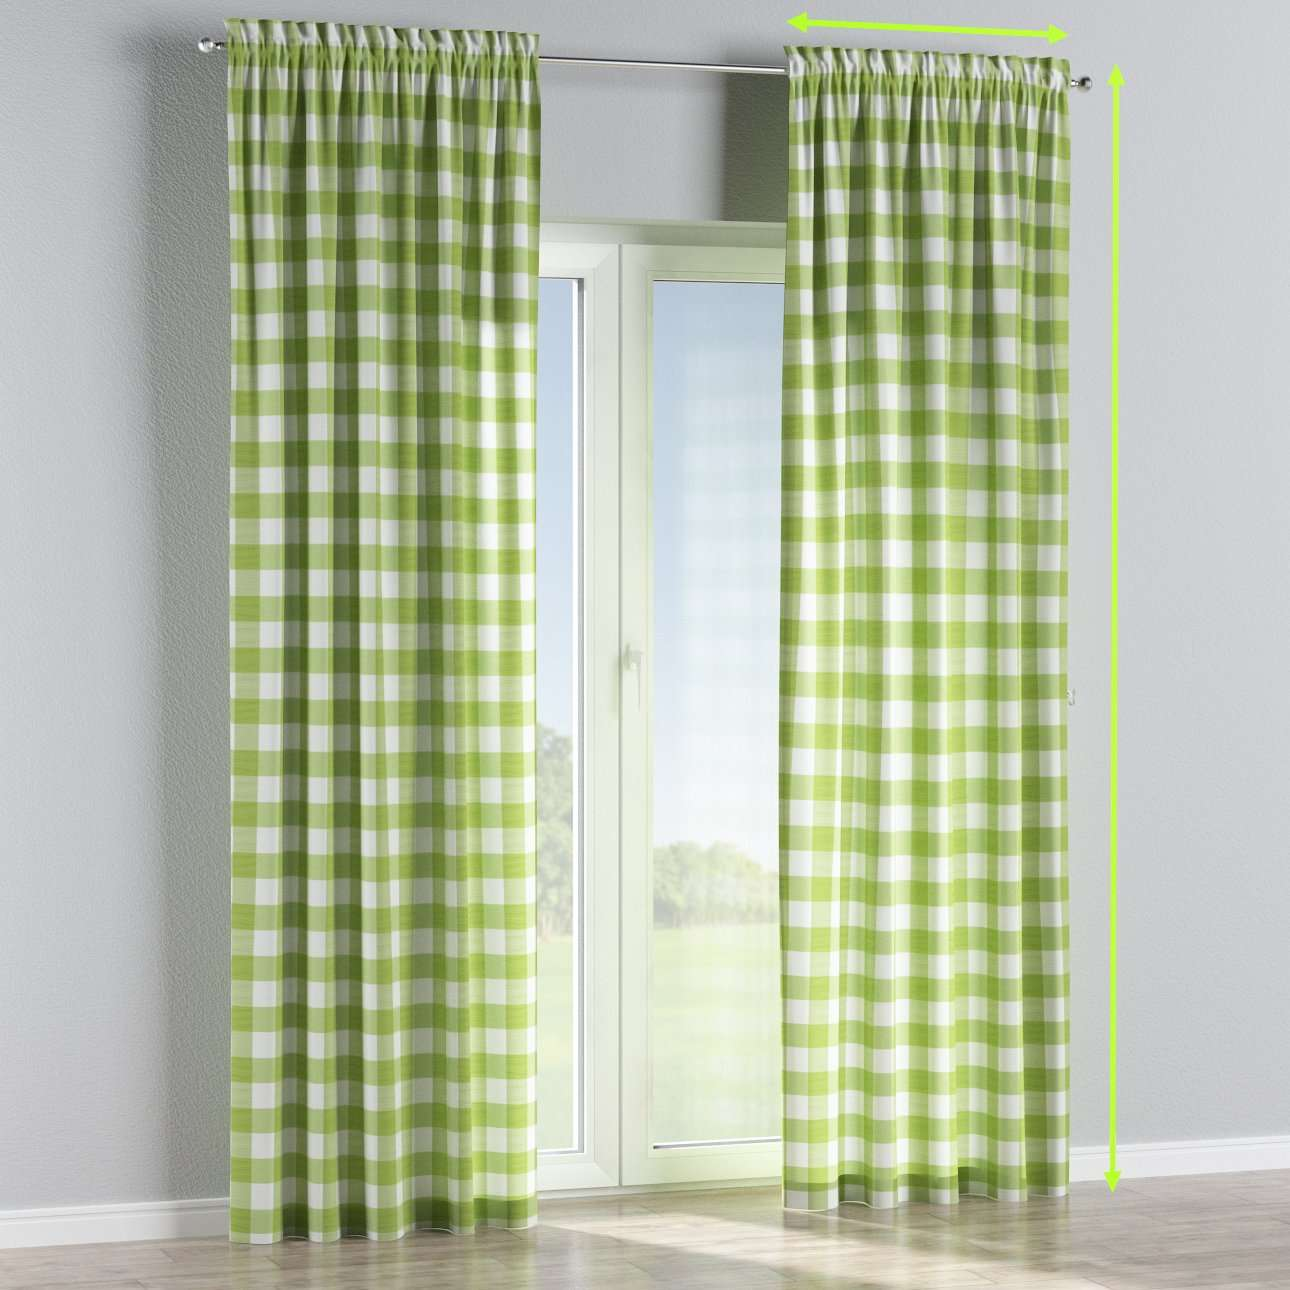 Slot and frill lined curtains in collection Quadro, fabric: 136-36